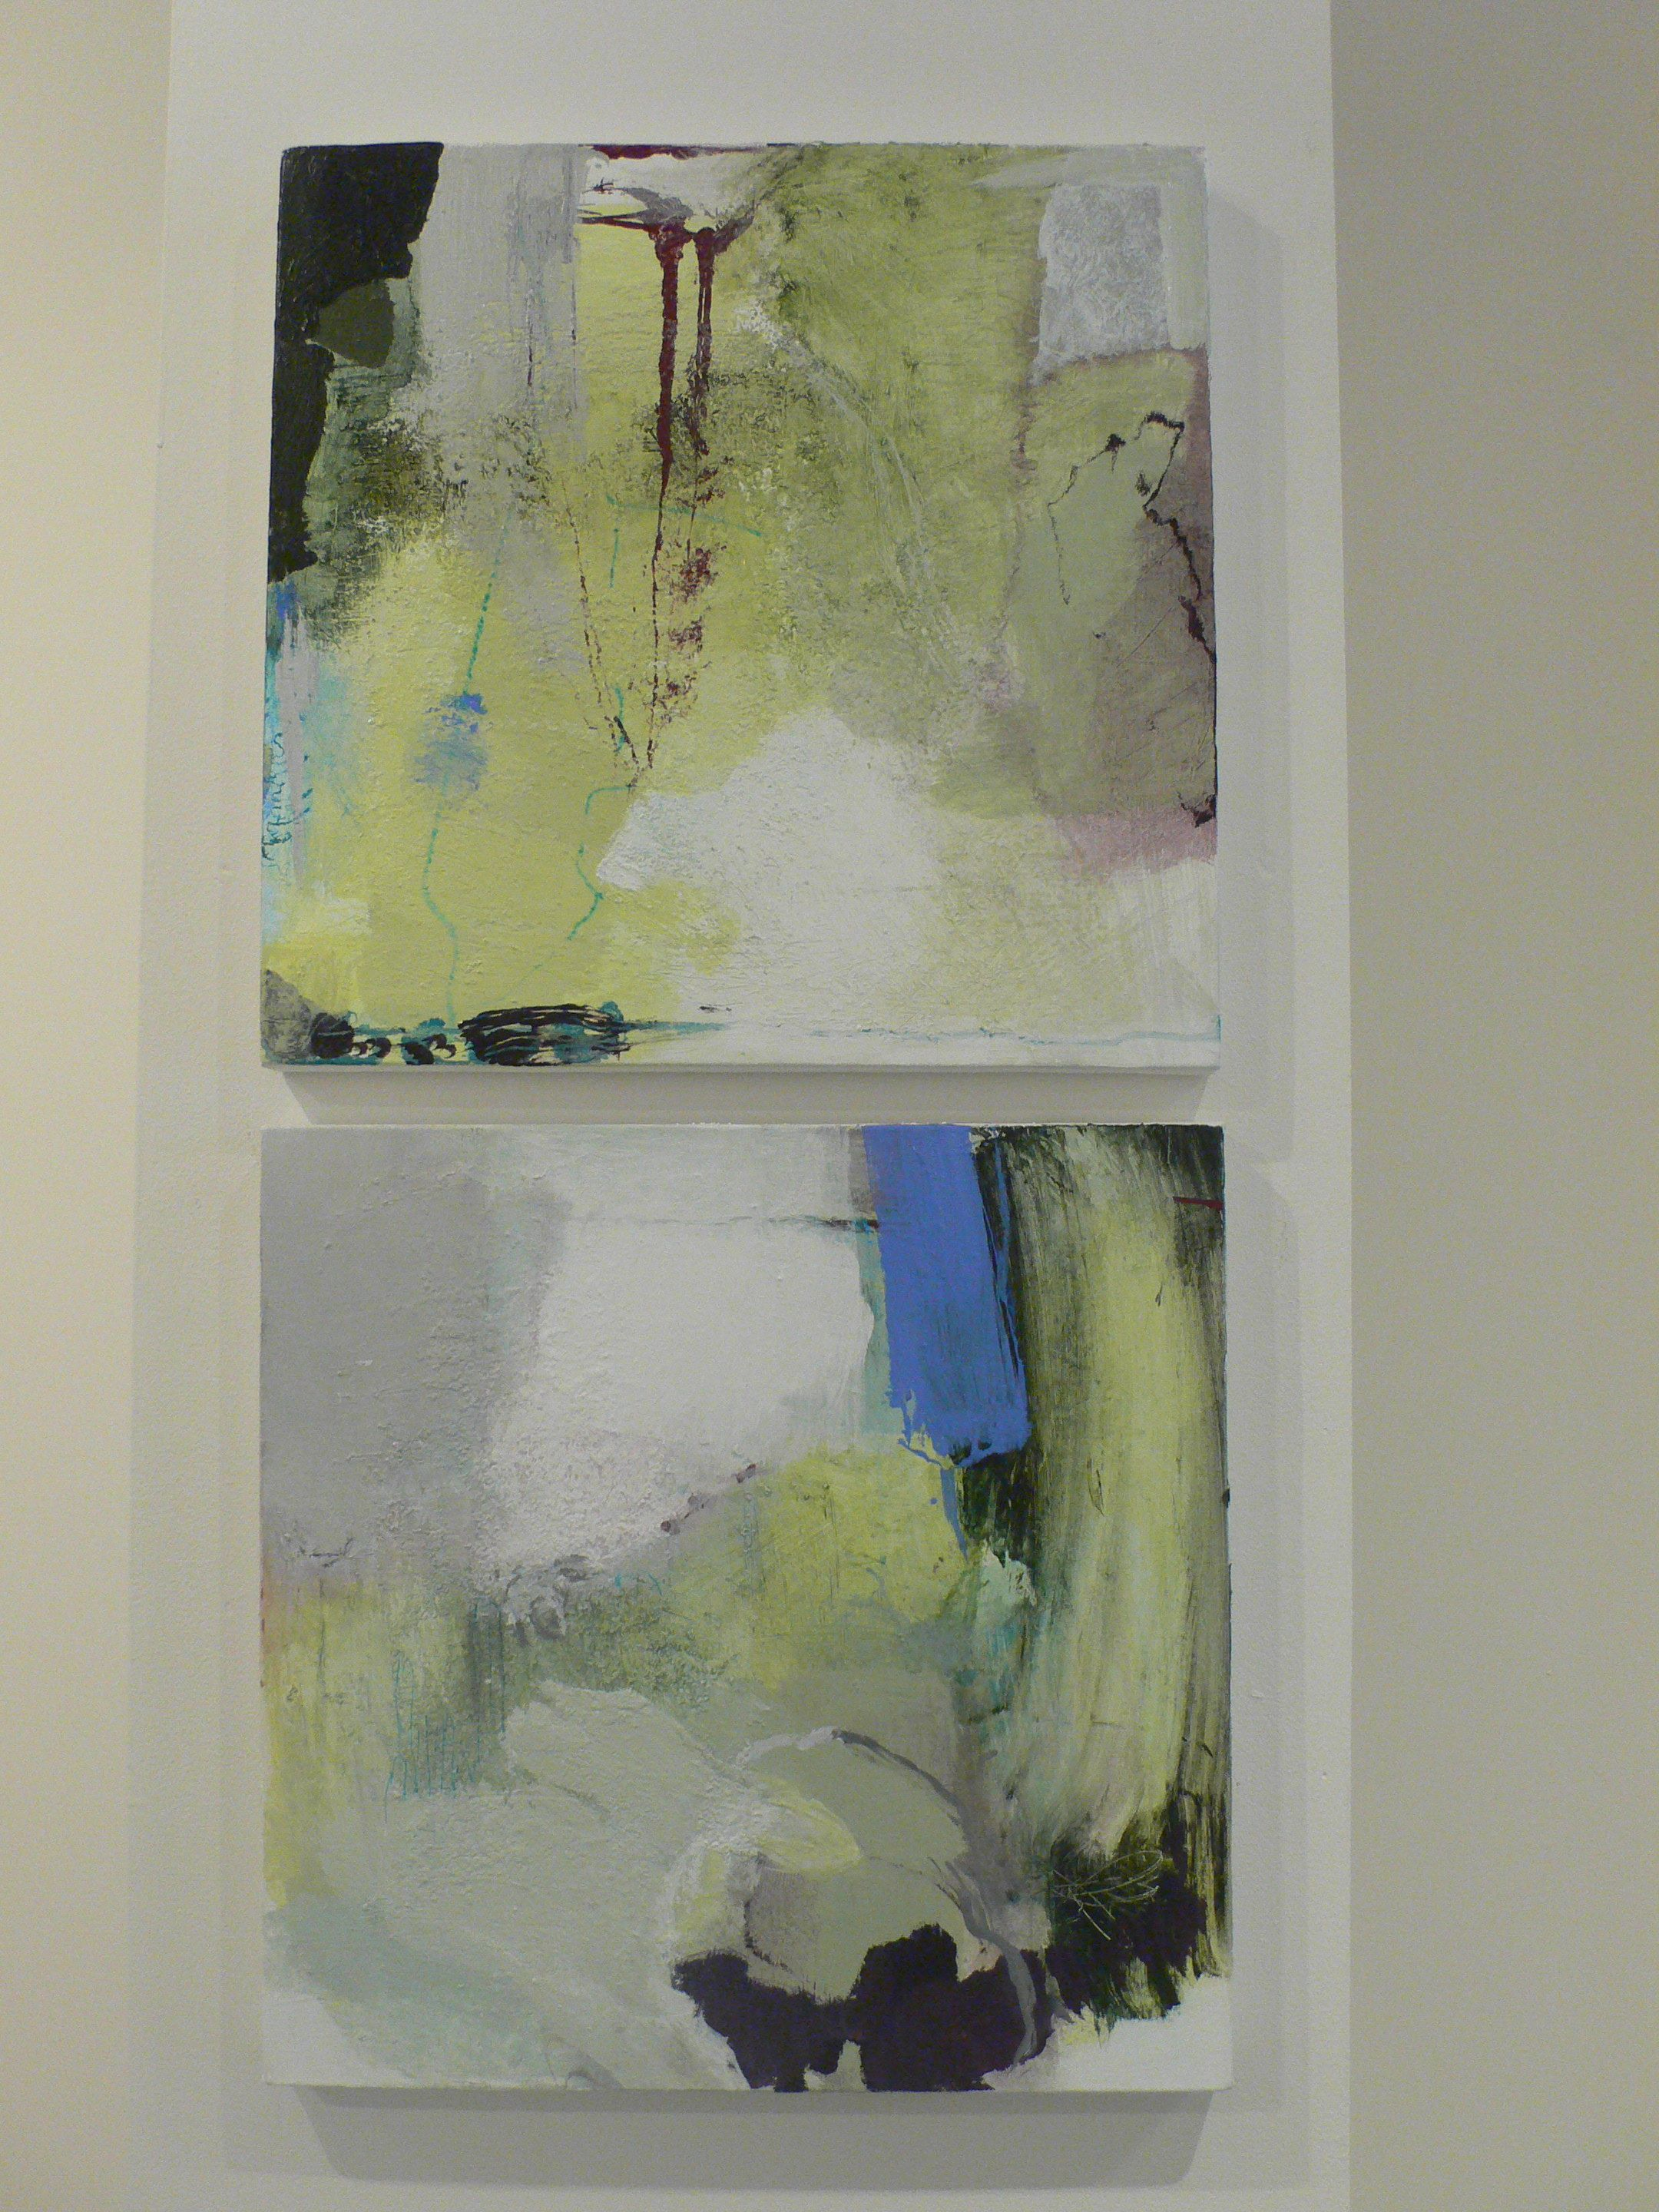 Madeline Denaro In 2021 Abstract Art Painting Modern Art Abstract Art Central